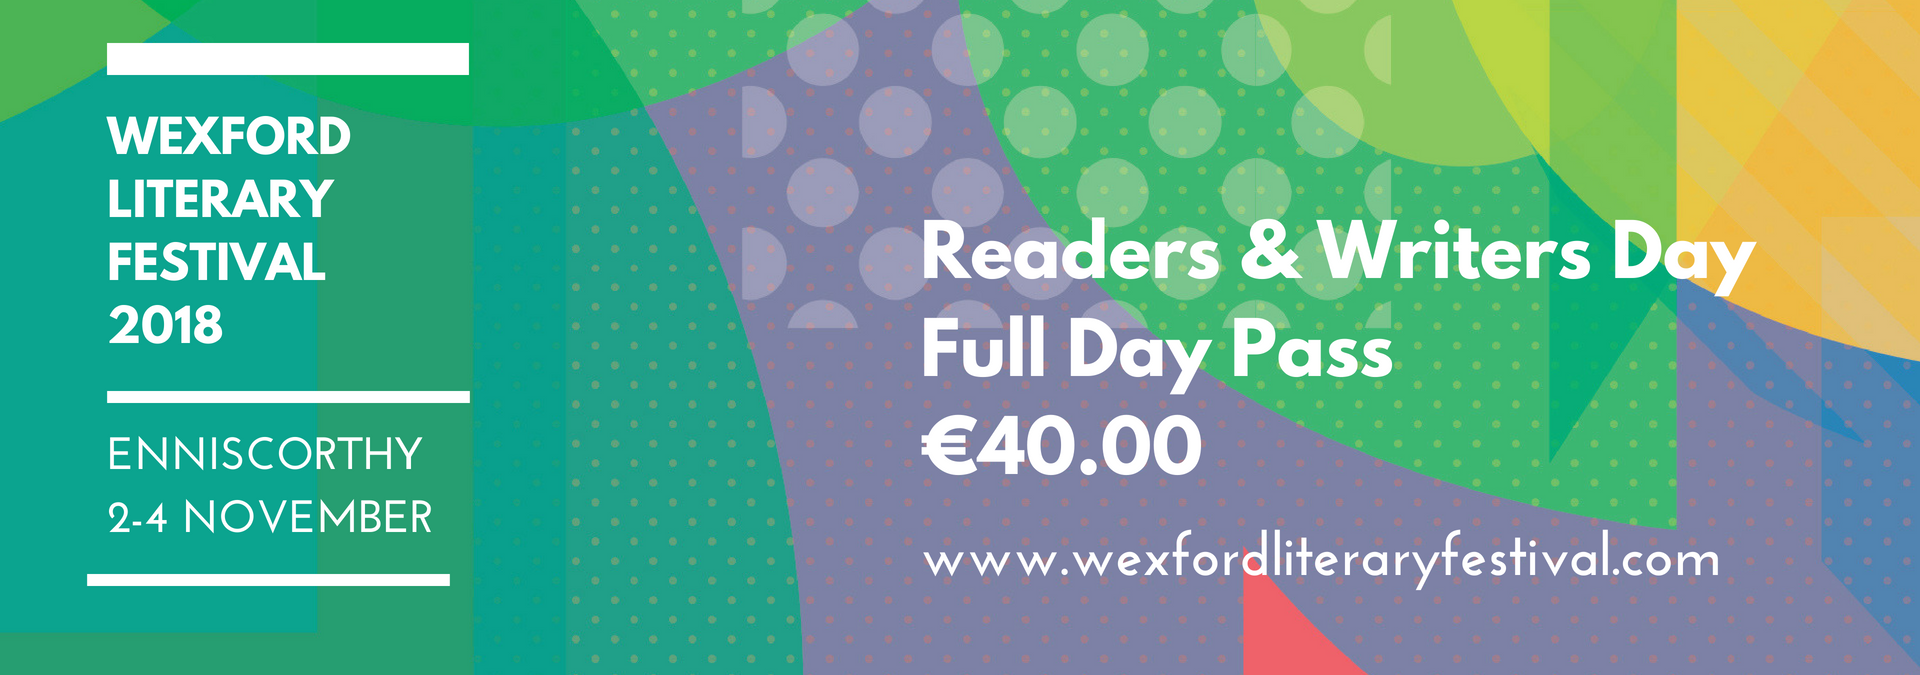 Media Launch Wexford Literary Festival 2018